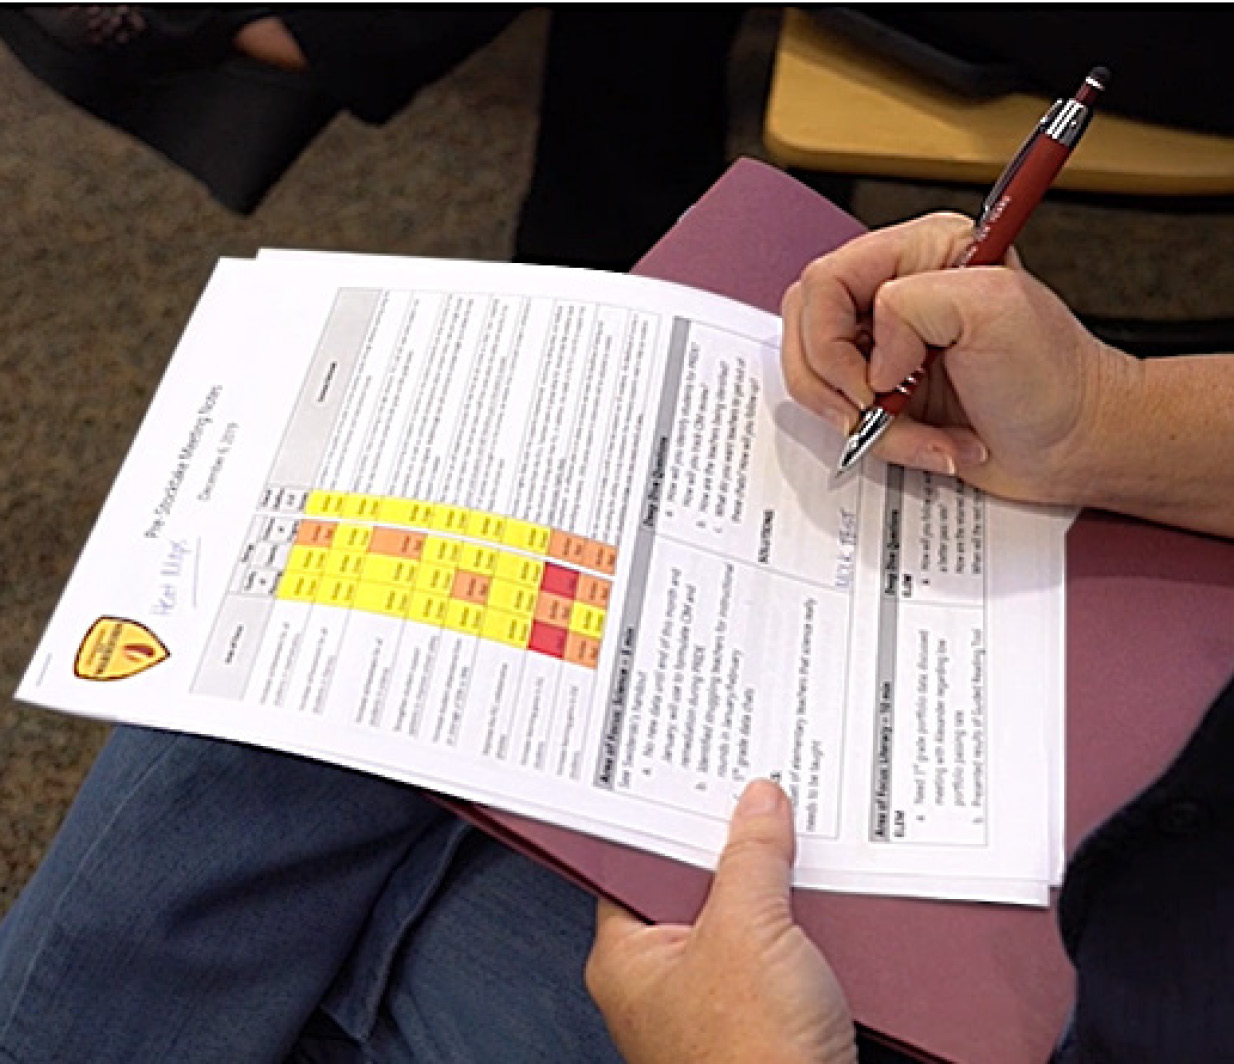 A Stocktake participant takes notes while reviewing the rating sheet, also referred to as a heat map.